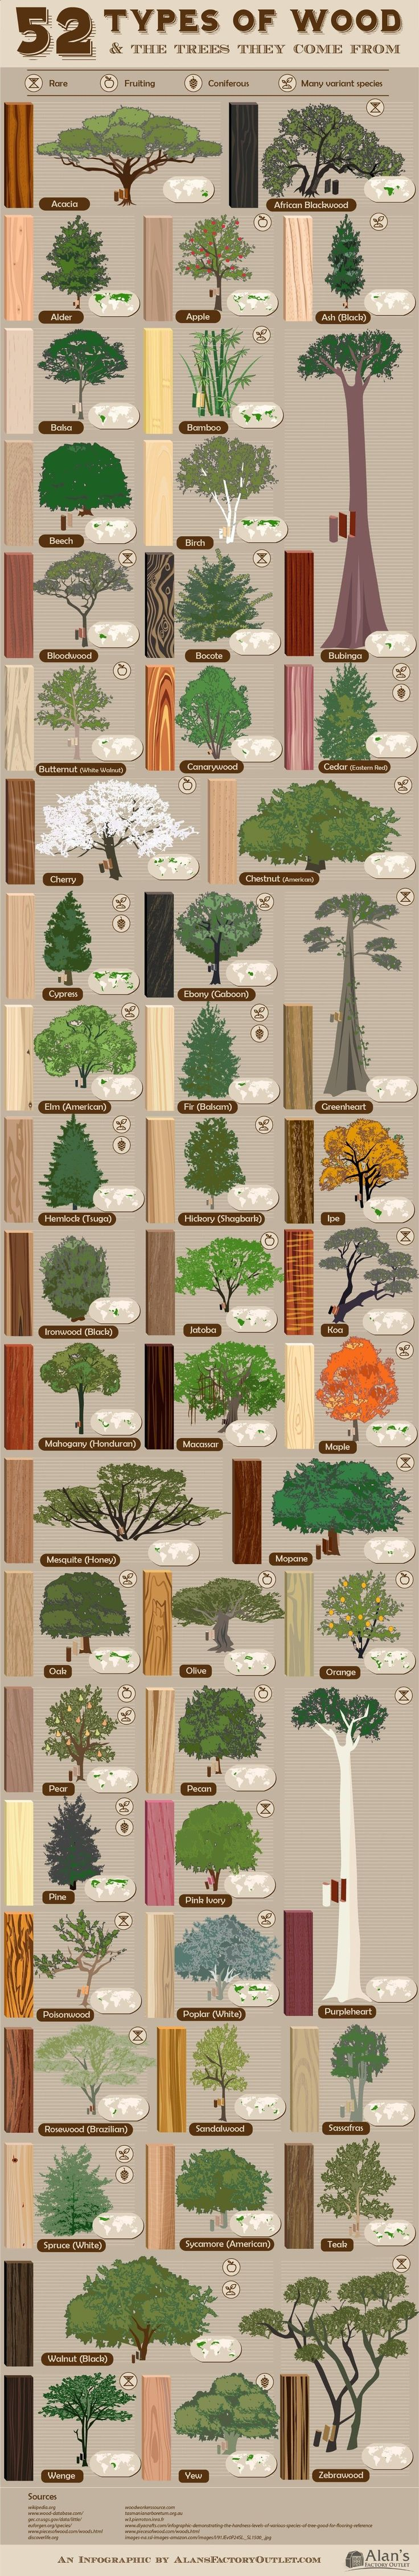 Wood Profits - 52 Types of Wood and the Trees They Come From - AlansFactoryOutle... - Infographic - Discover How You Can Start A Woodworking Business From Home Easily in 7 Days With NO Capital Needed! #woodworkinginfographic #homeschoolinginfographic